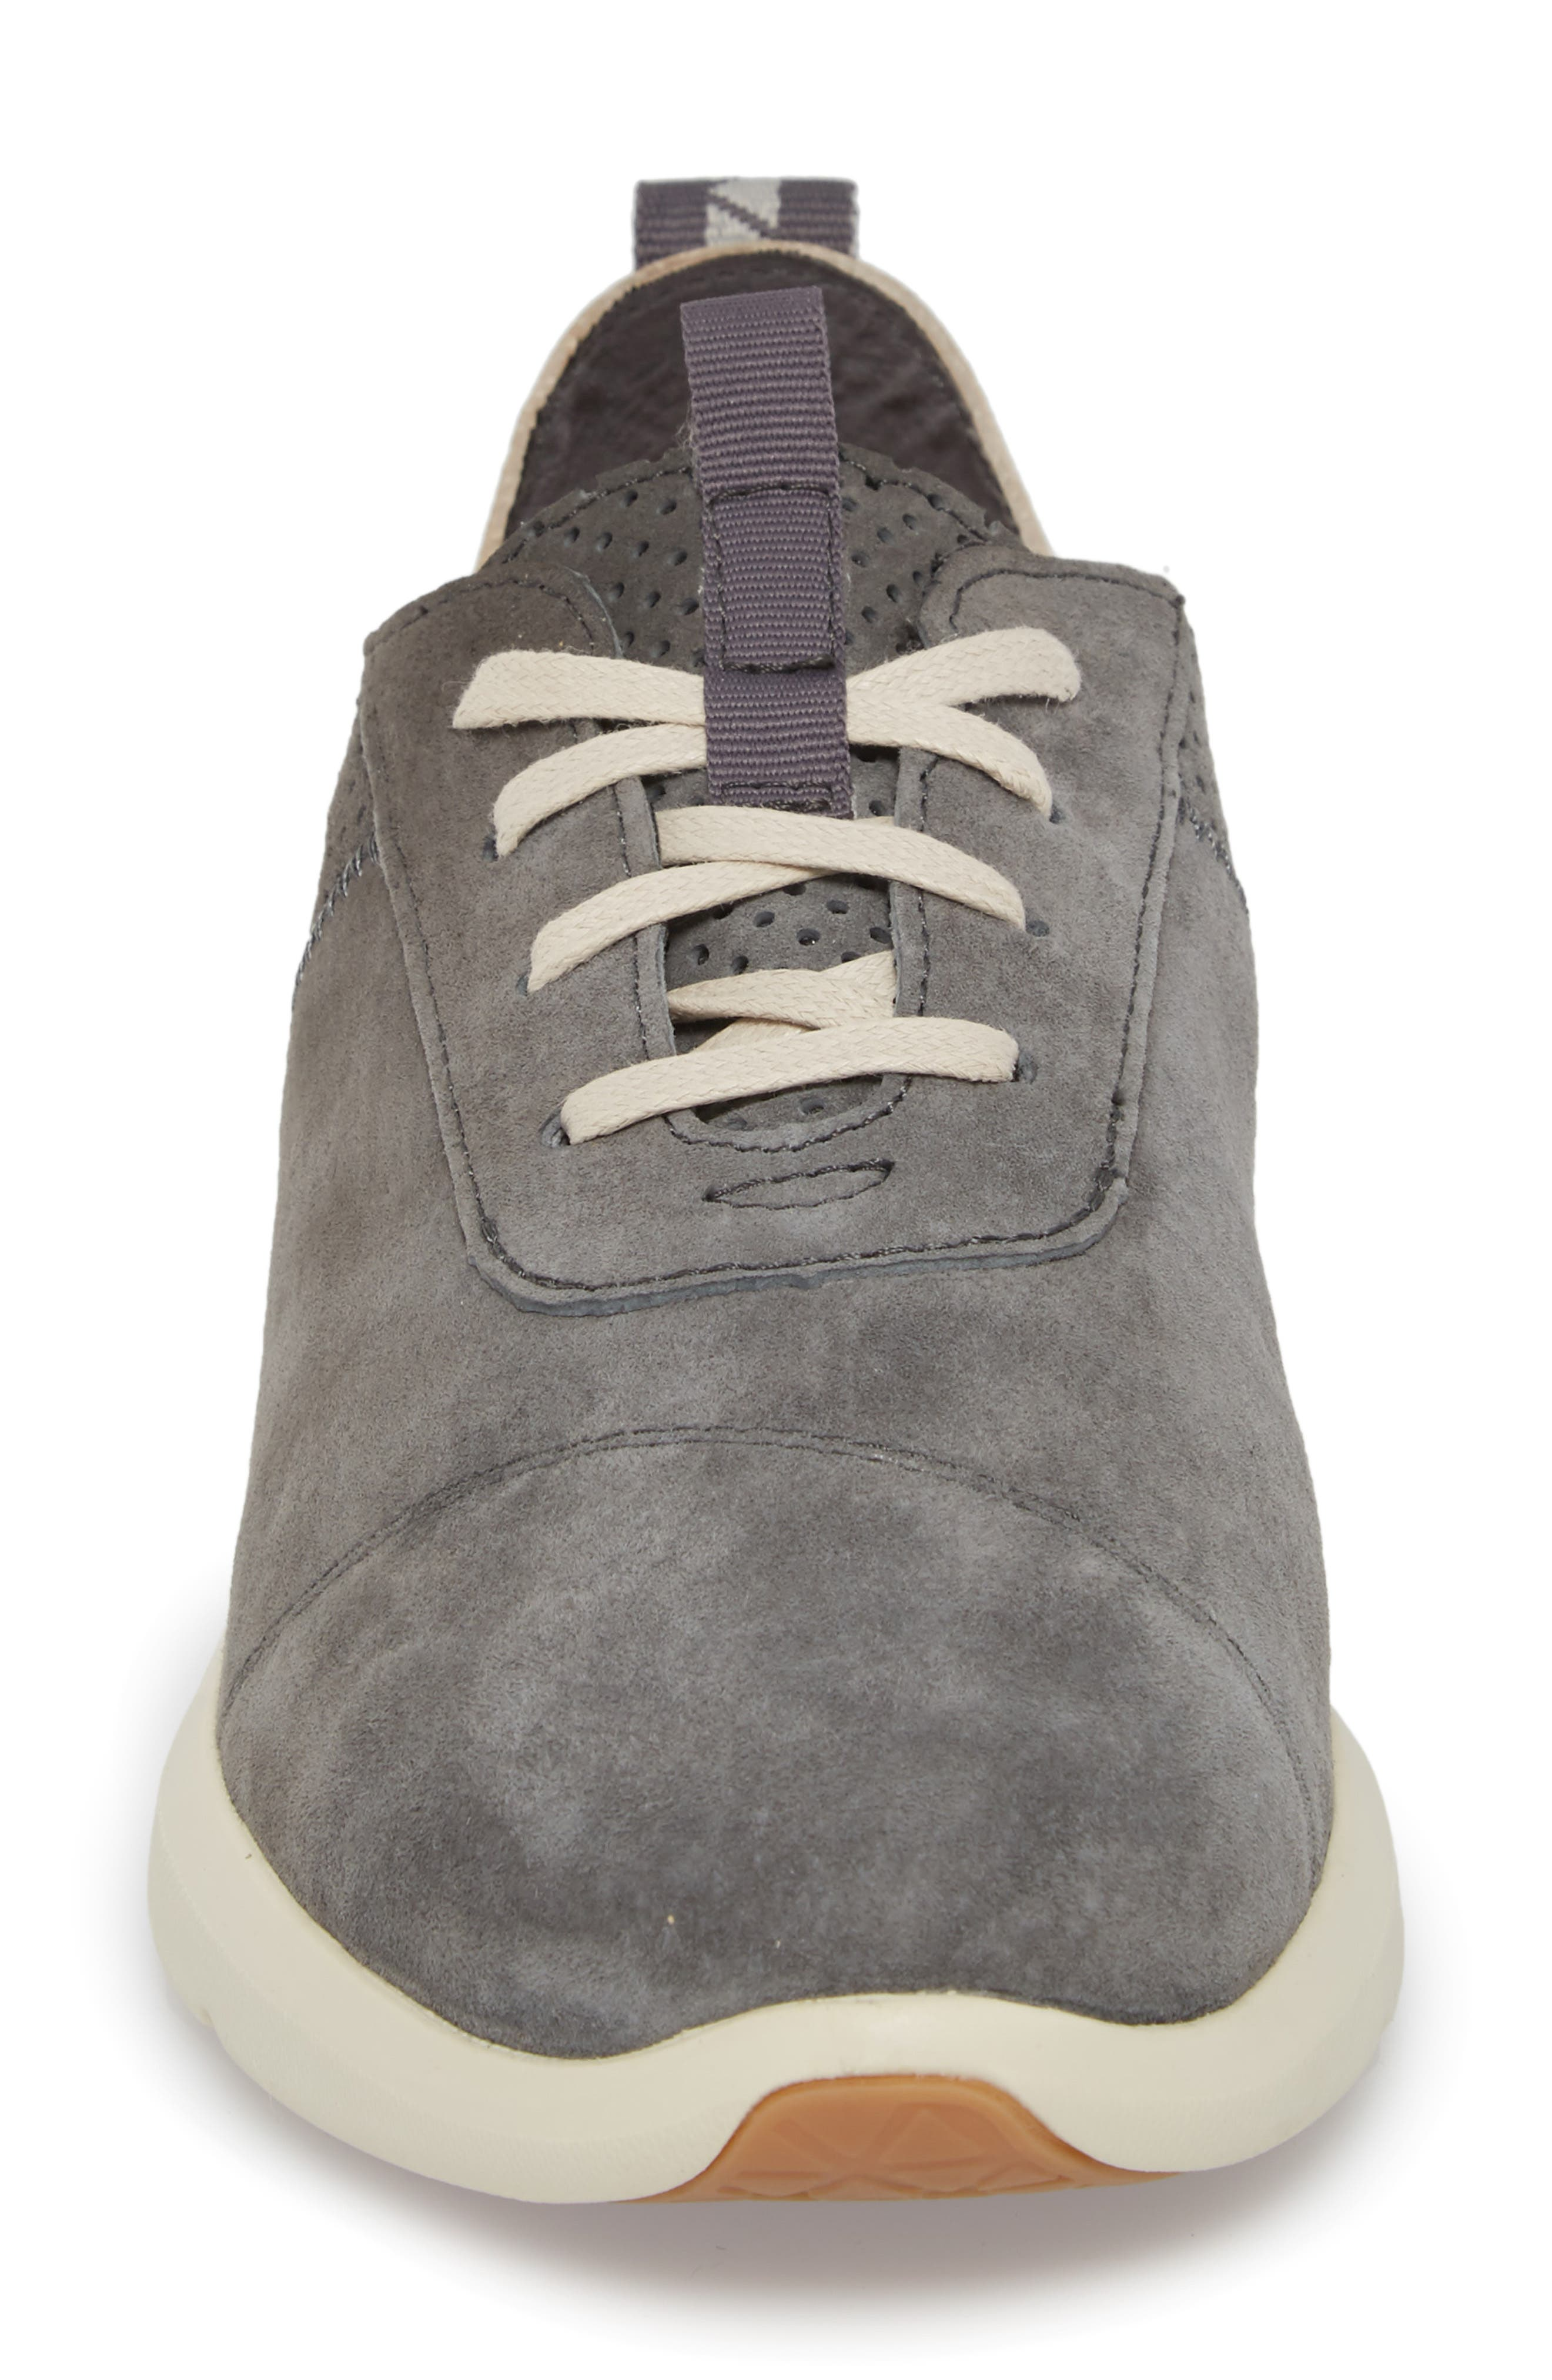 Cabrillo Perforated Low Top Sneaker,                             Alternate thumbnail 4, color,                             021